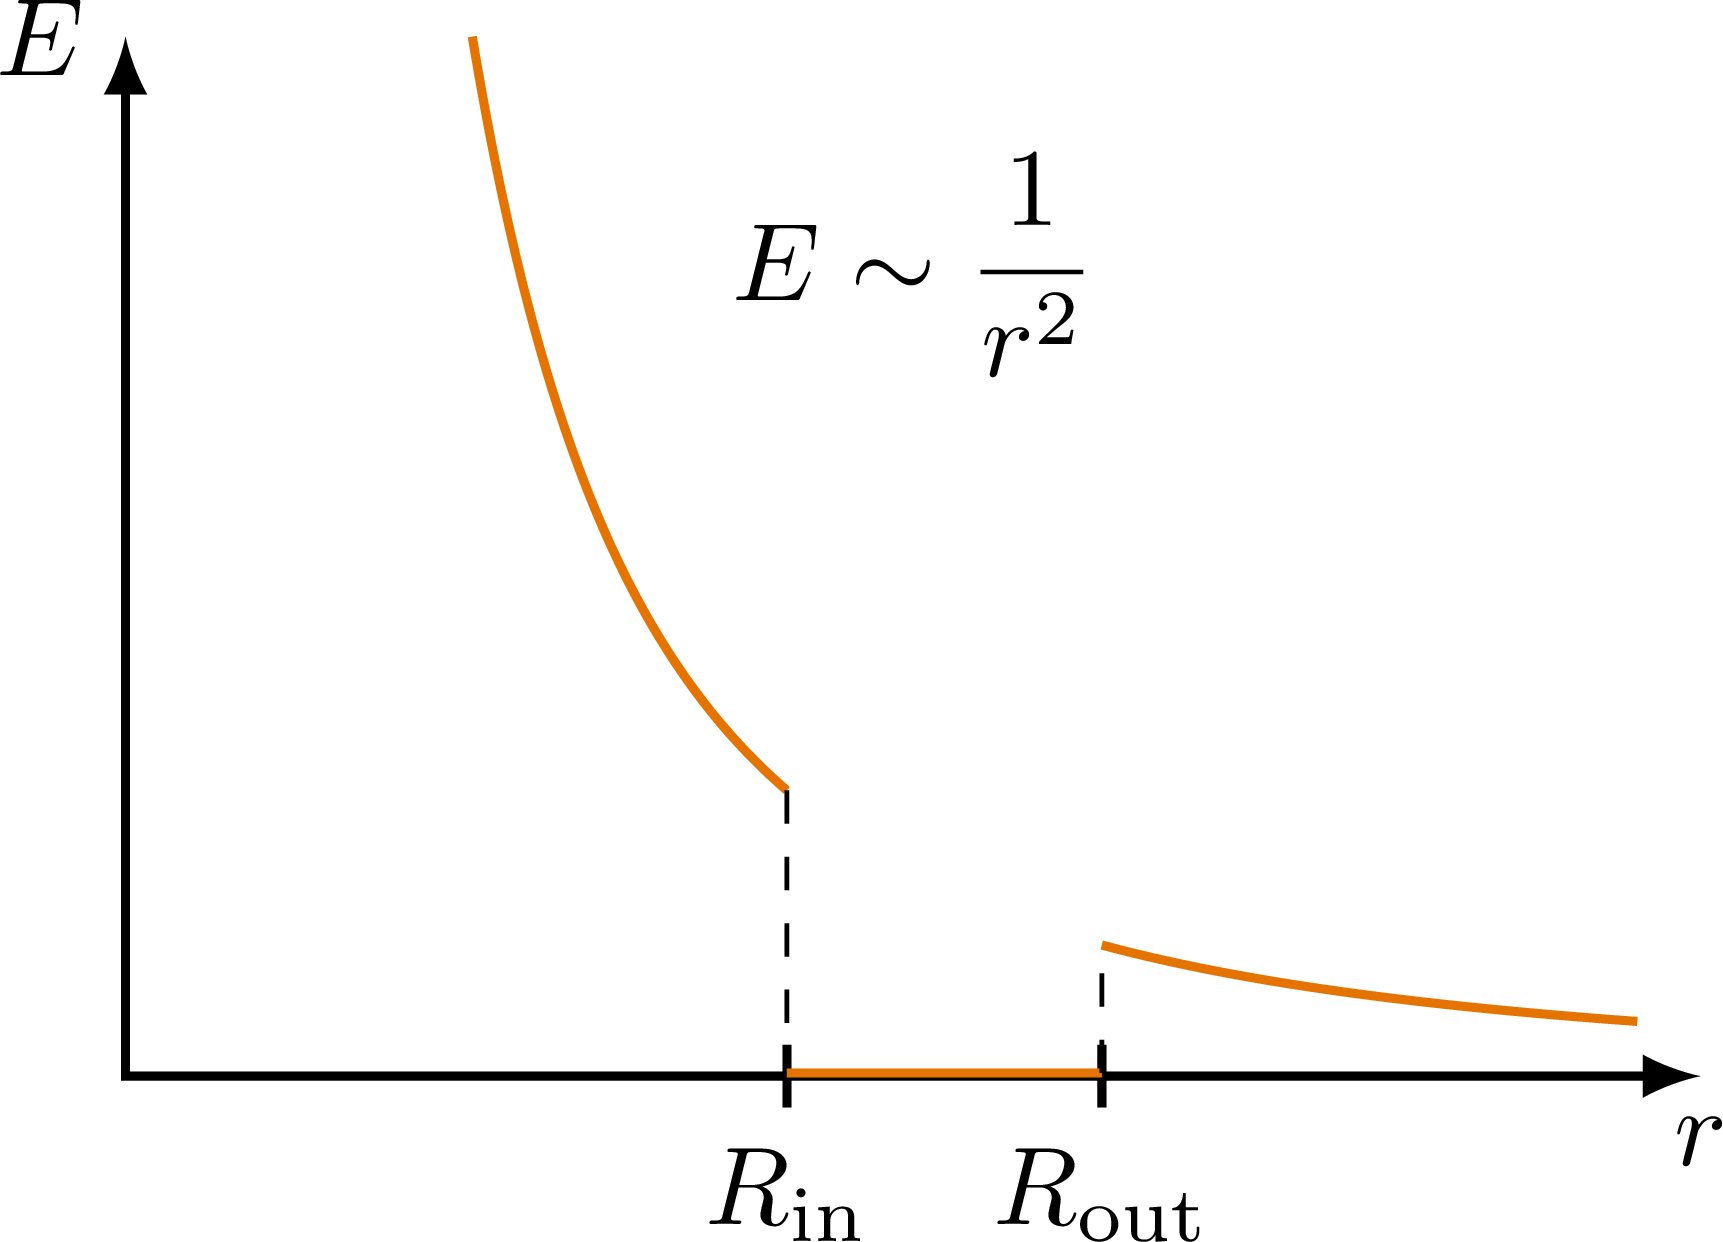 electric_field_plots-007.png